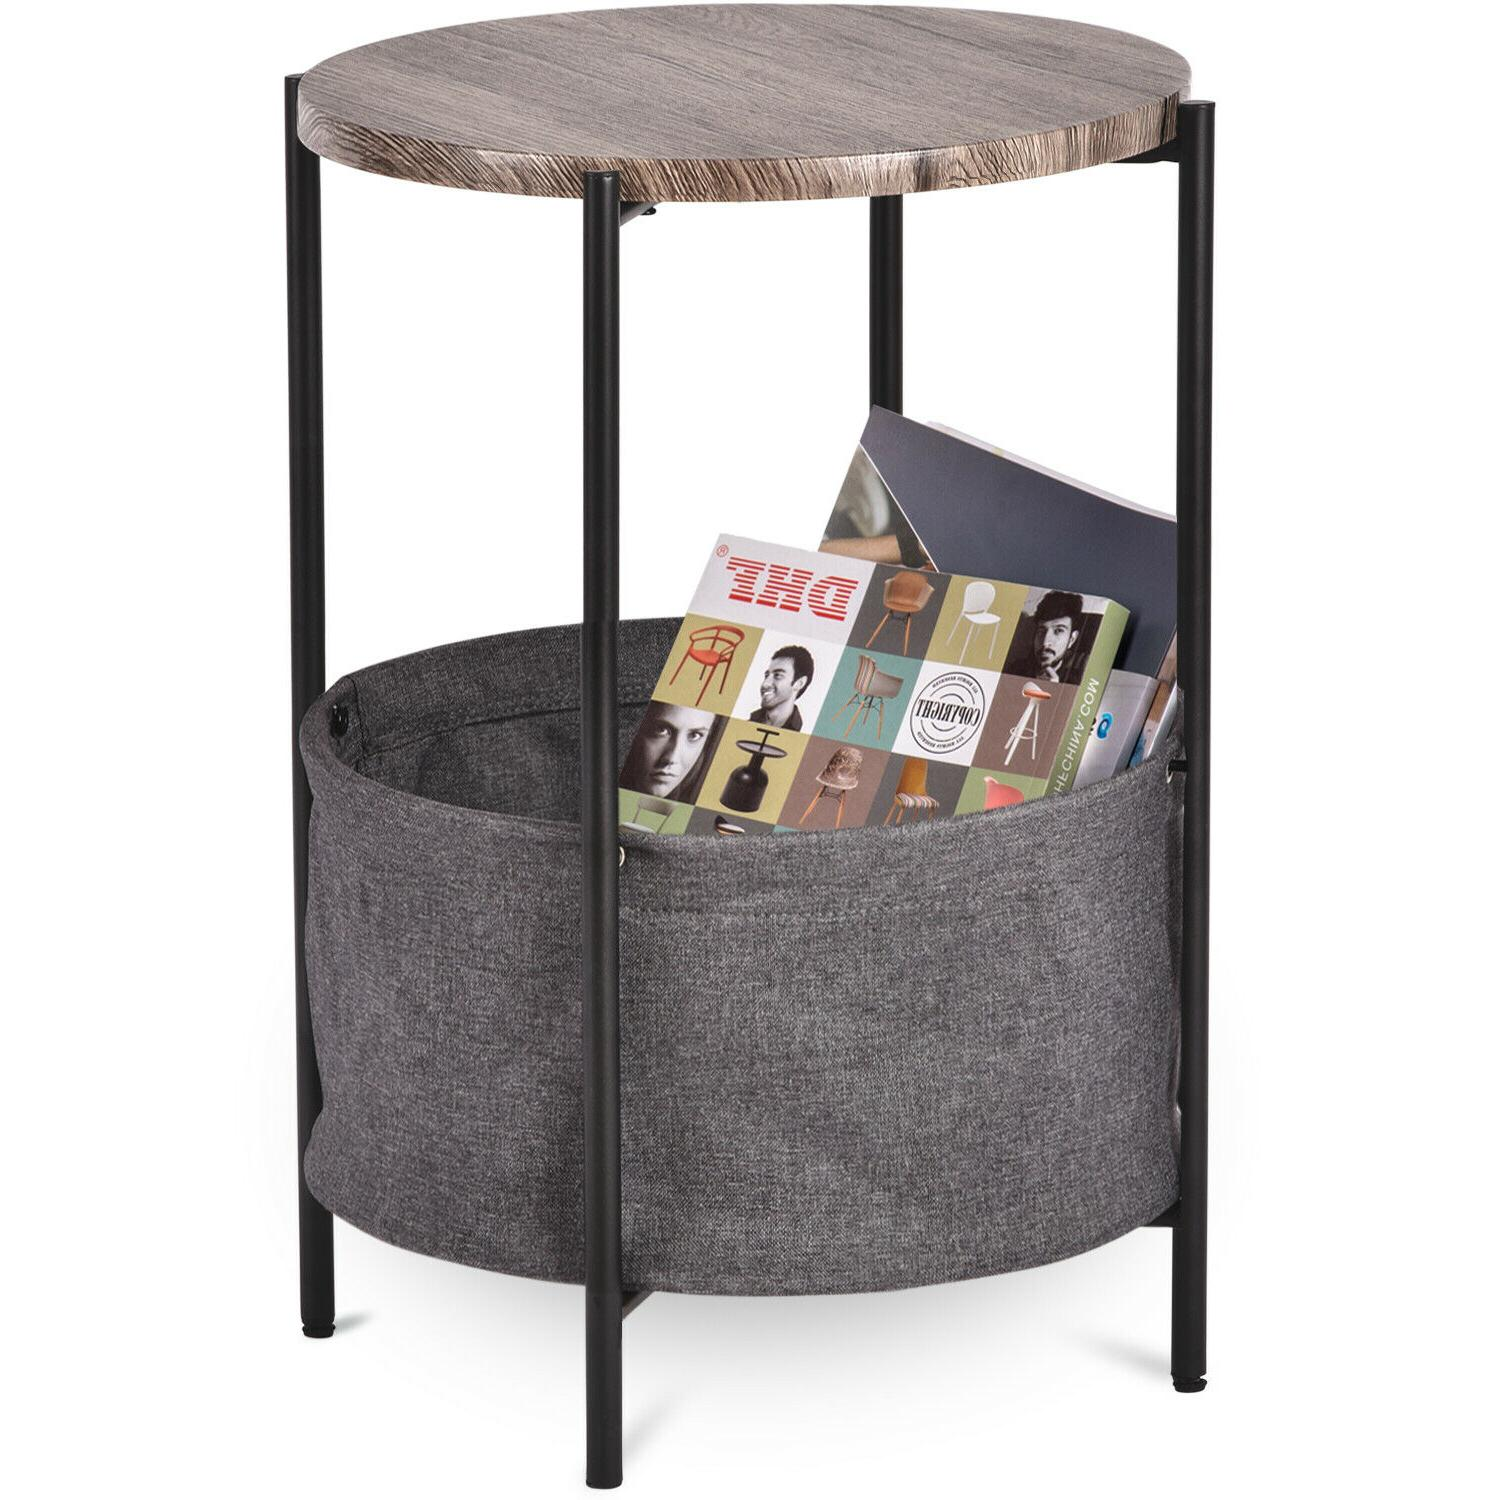 Modern Sofa Side Table Nightstand with Basket Storage Table